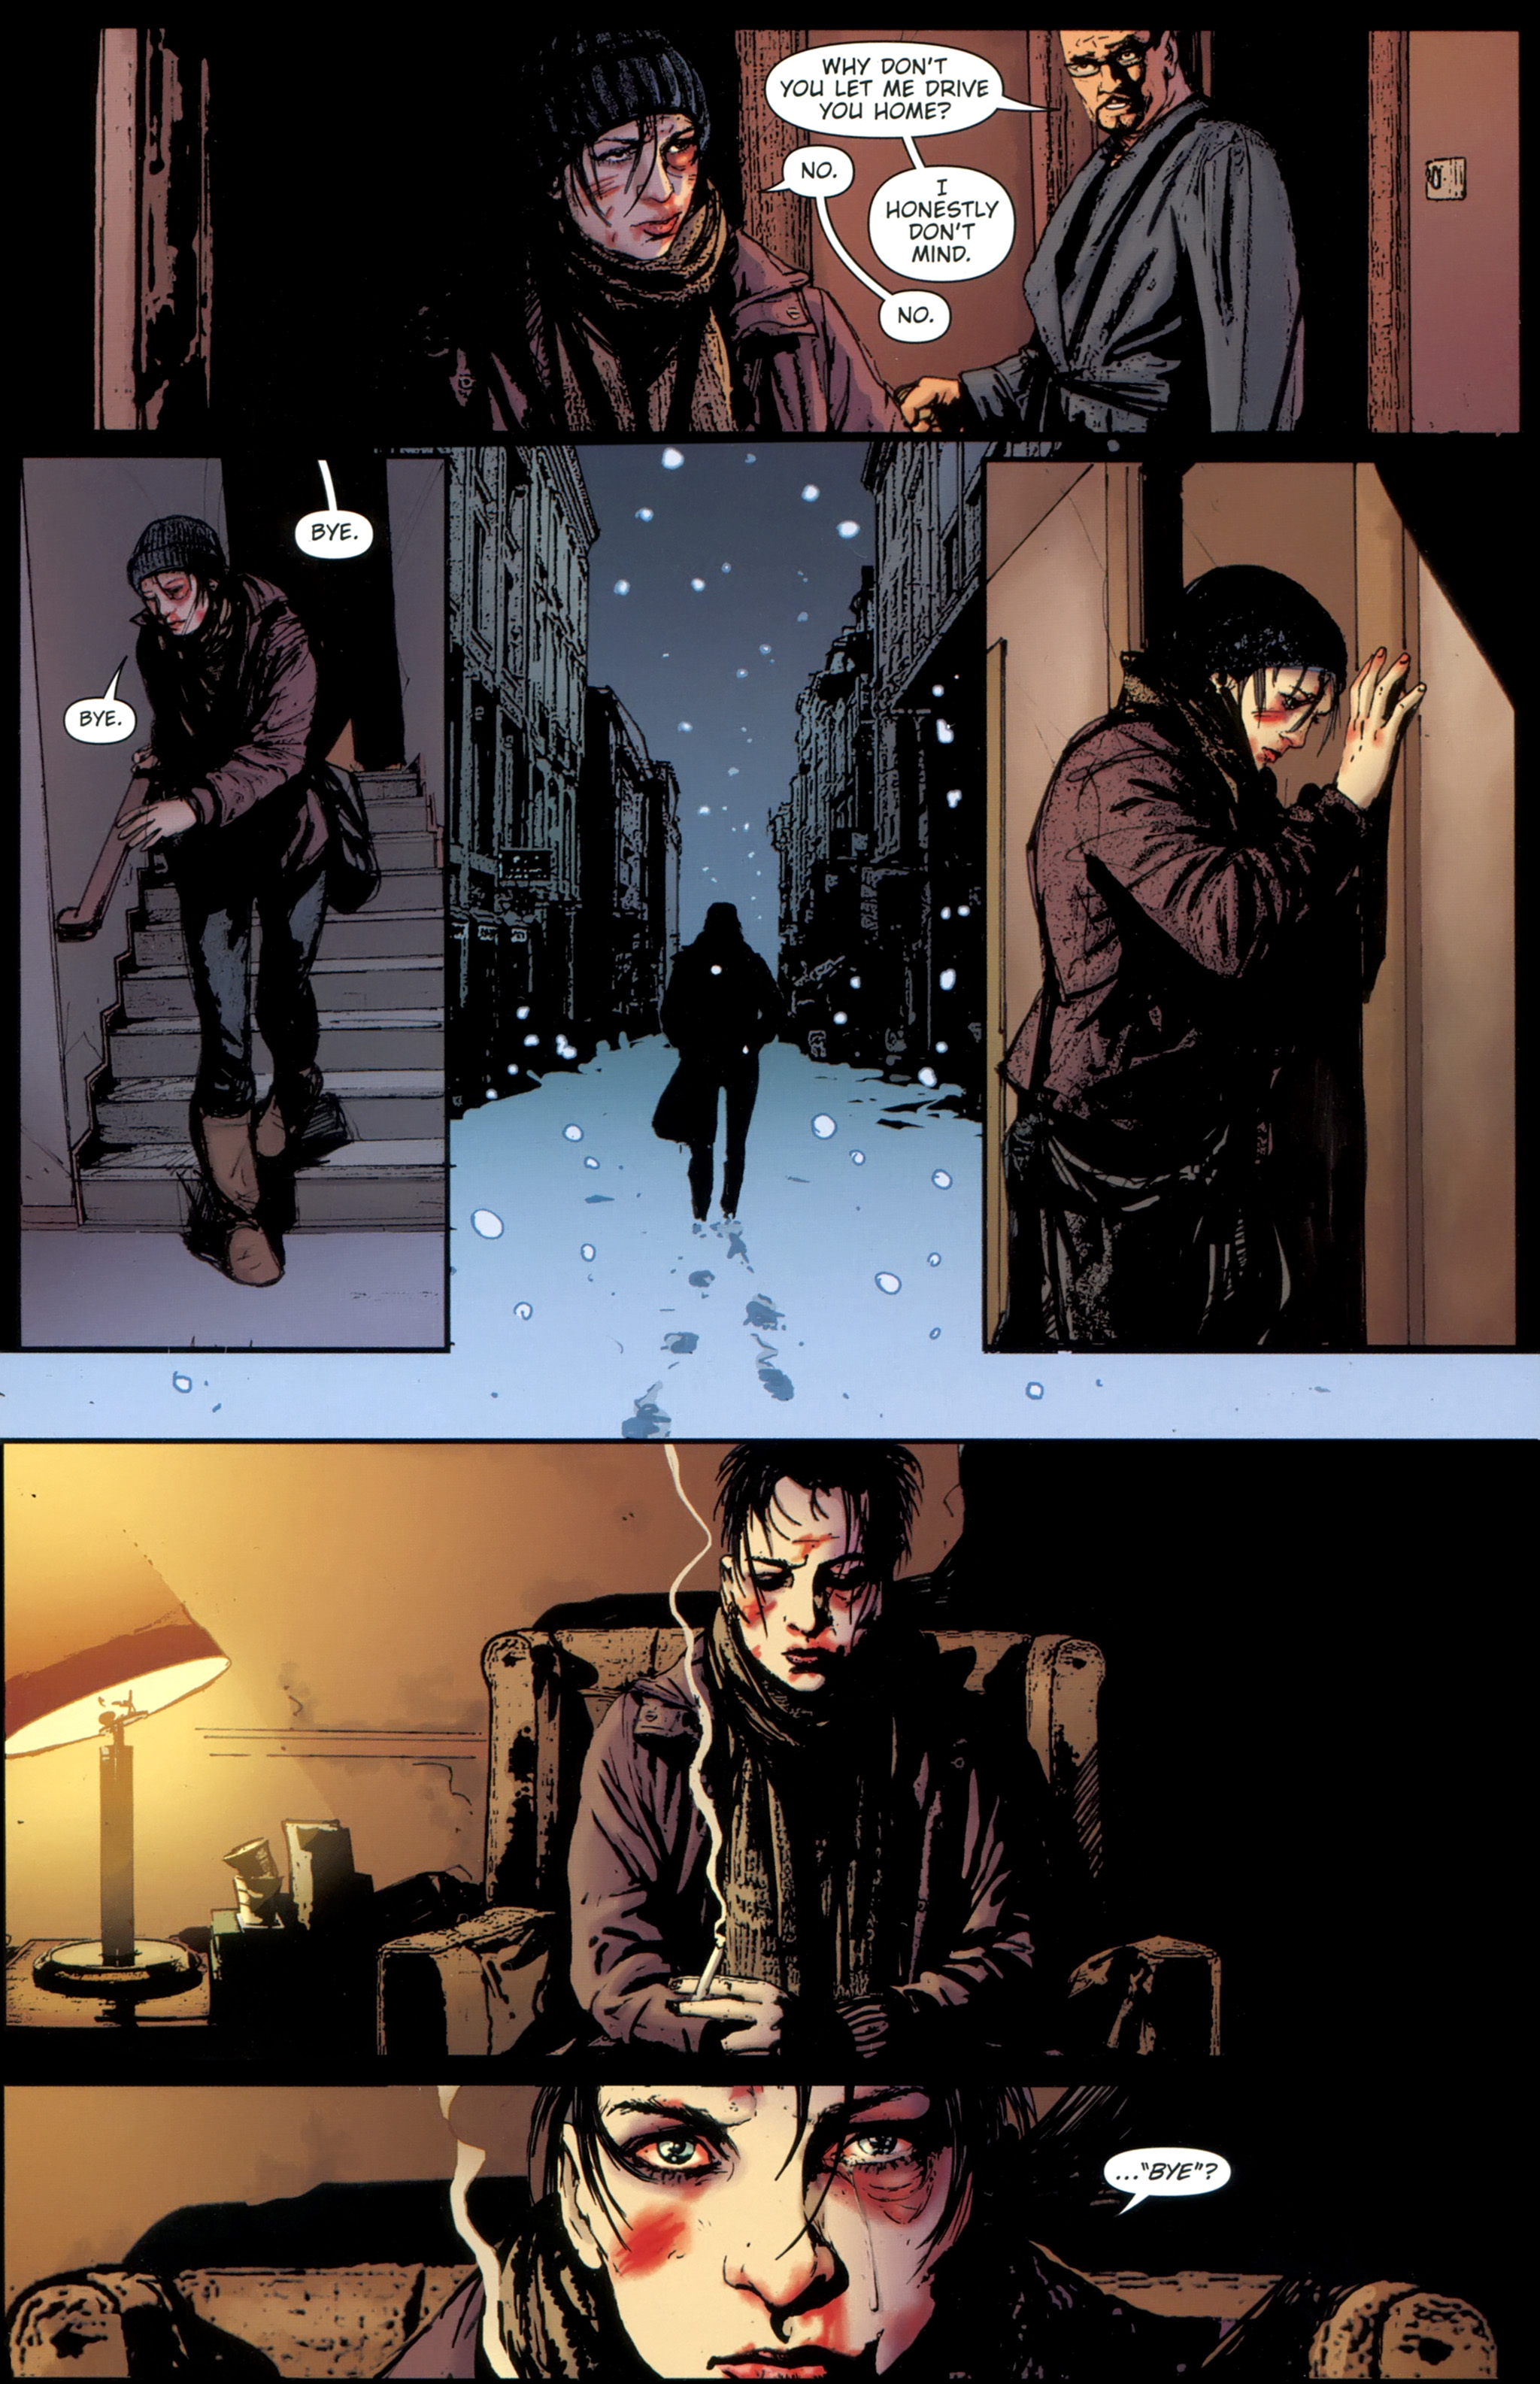 Read online The Girl With the Dragon Tattoo comic -  Issue # TPB 1 - 124